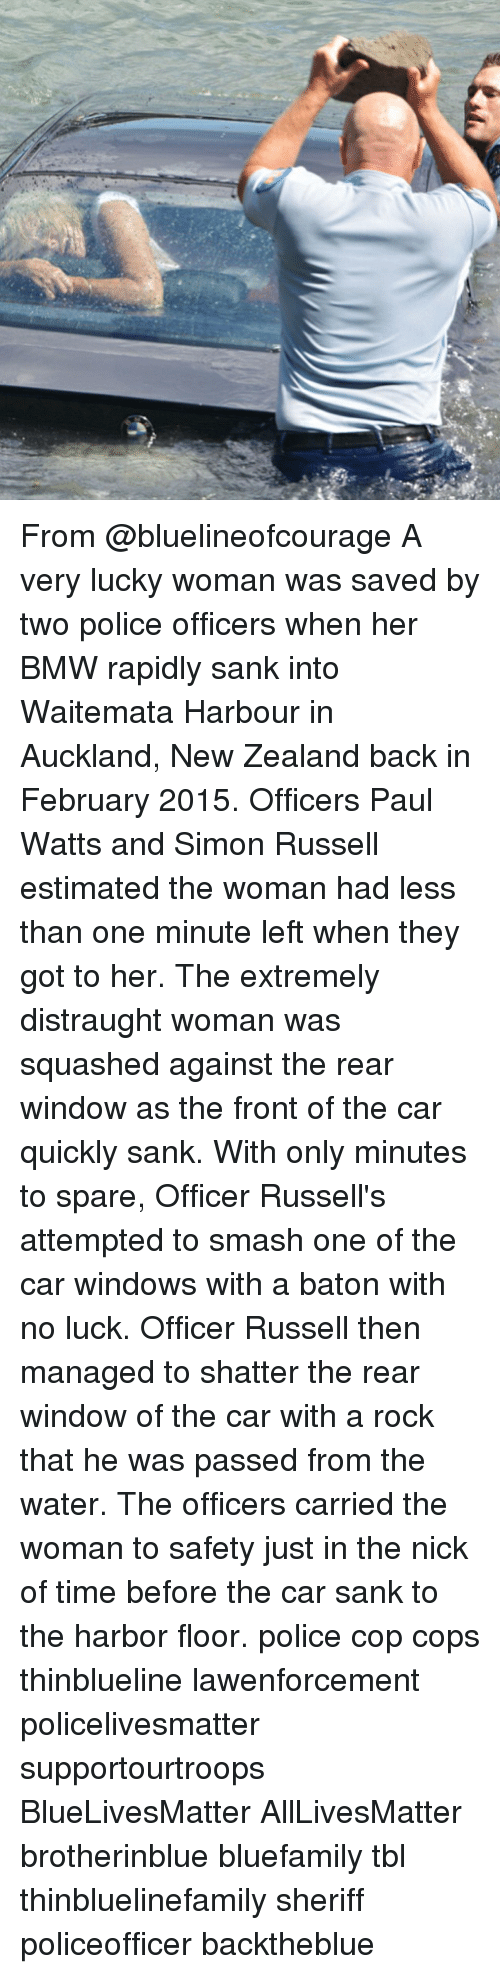 All Lives Matter, Bmw, and Memes: From @bluelineofcourage A very lucky woman was saved by two police officers when her BMW rapidly sank into Waitemata Harbour in Auckland, New Zealand back in February 2015. Officers Paul Watts and Simon Russell estimated the woman had less than one minute left when they got to her. The extremely distraught woman was squashed against the rear window as the front of the car quickly sank. With only minutes to spare, Officer Russell's attempted to smash one of the car windows with a baton with no luck. Officer Russell then managed to shatter the rear window of the car with a rock that he was passed from the water. The officers carried the woman to safety just in the nick of time before the car sank to the harbor floor. police cop cops thinblueline lawenforcement policelivesmatter supportourtroops BlueLivesMatter AllLivesMatter brotherinblue bluefamily tbl thinbluelinefamily sheriff policeofficer backtheblue